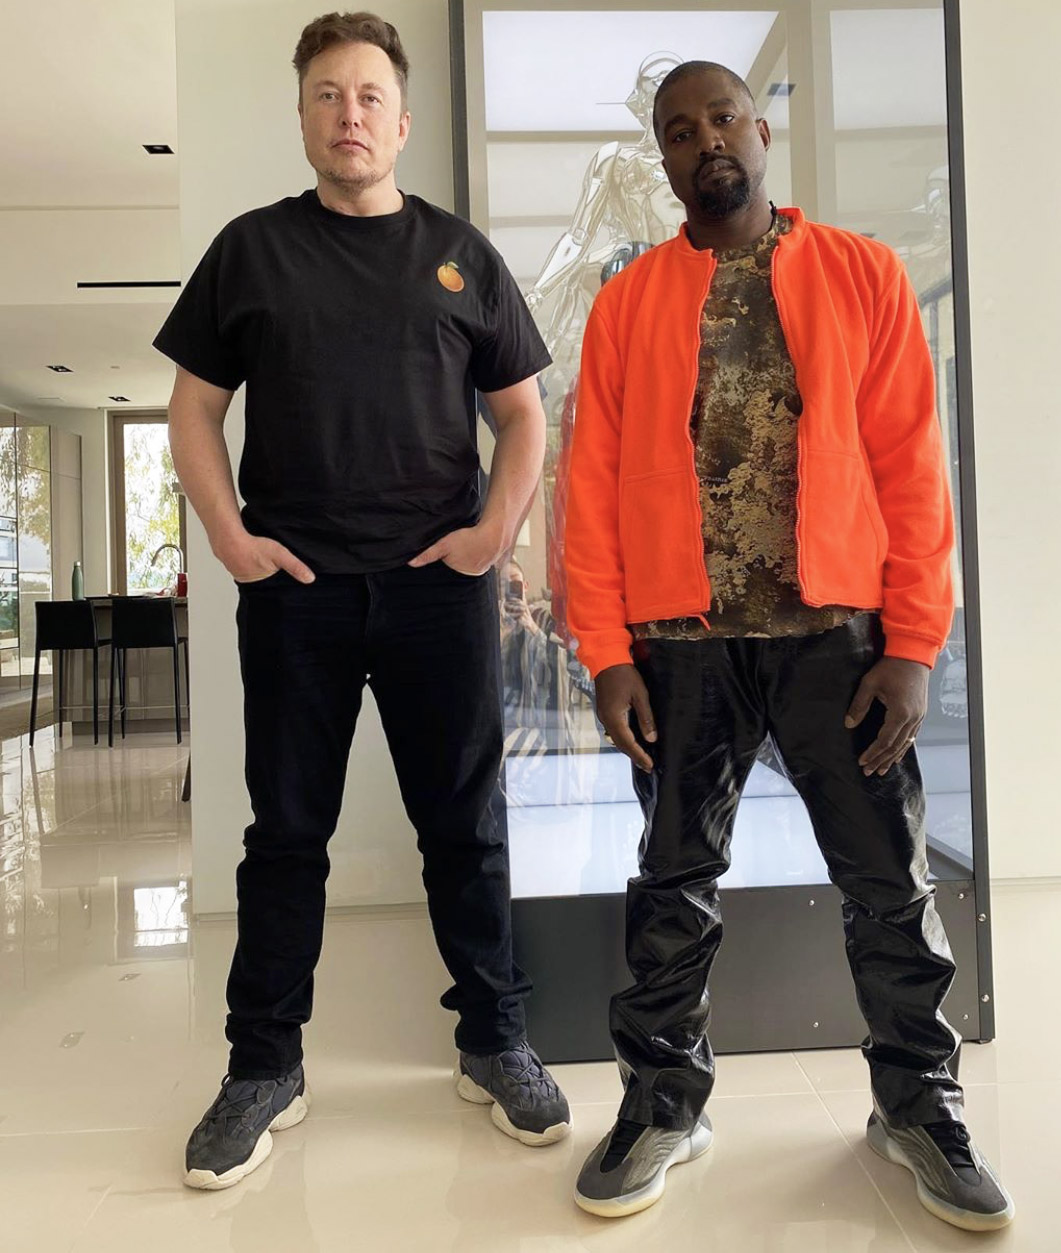 Elon Musk feat. Kanye West (Grimes)